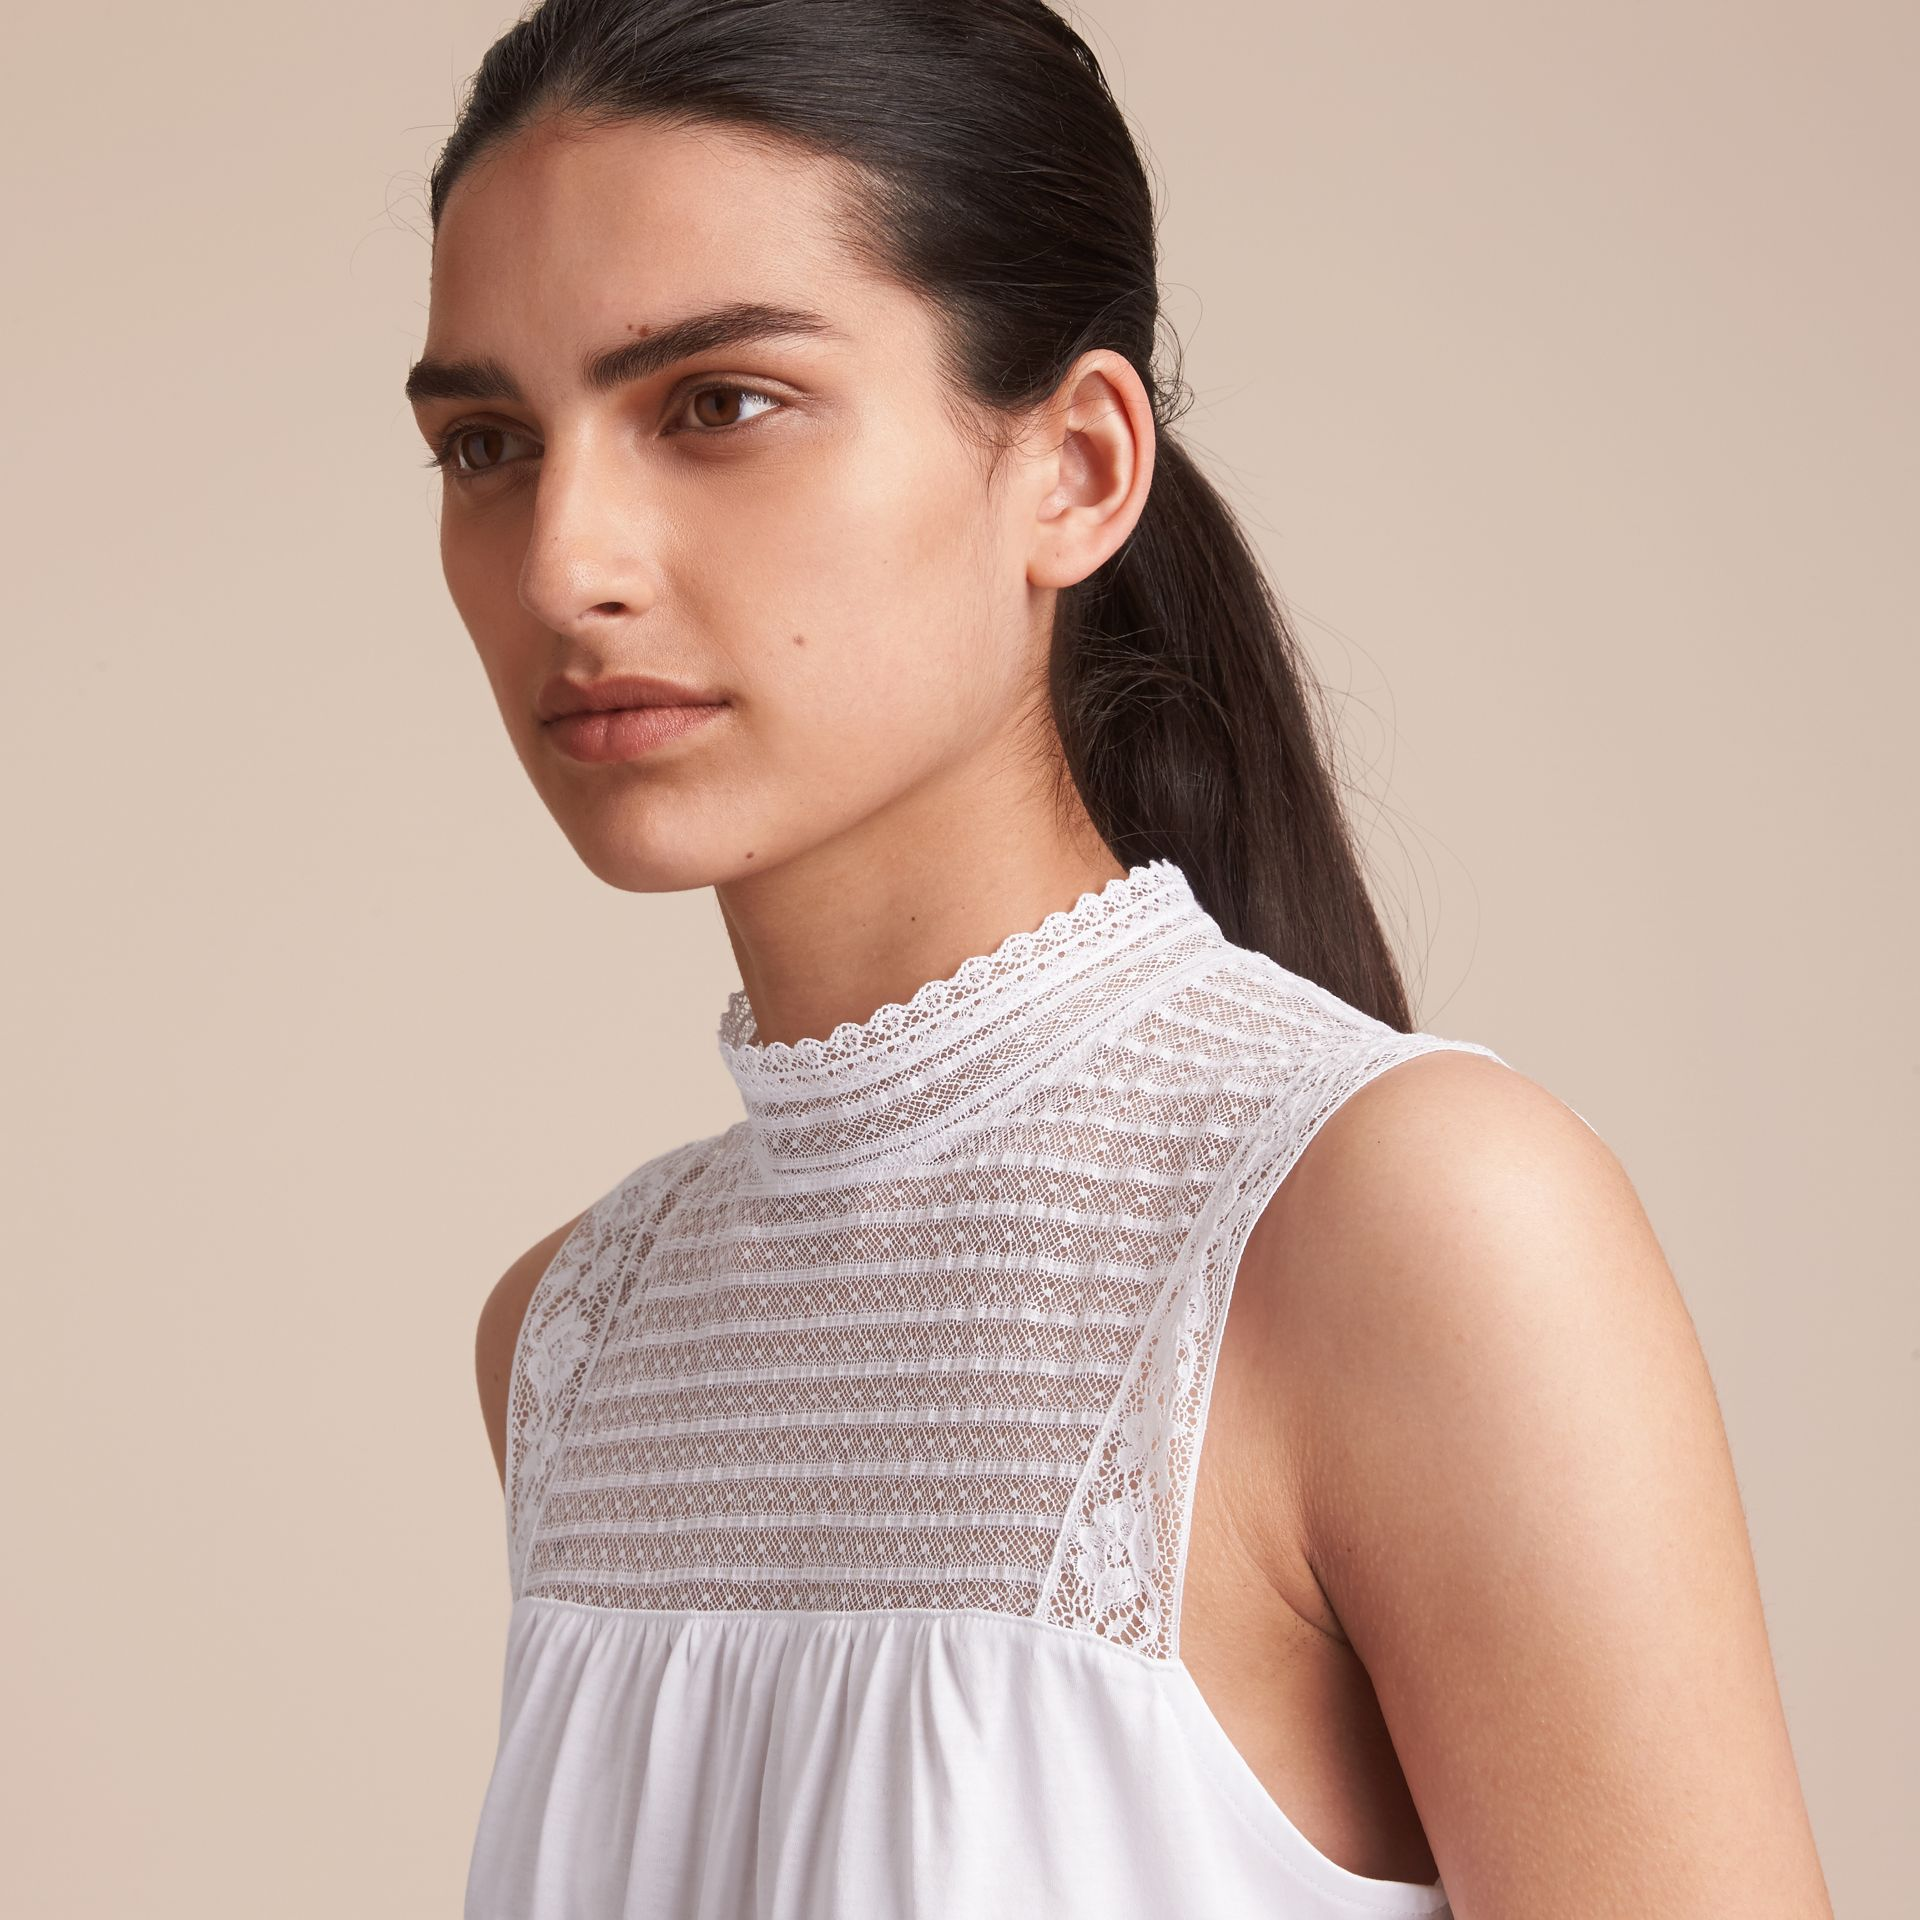 Sleeveless Lace Panel Cotton Top in White - Women | Burberry Canada - gallery image 5